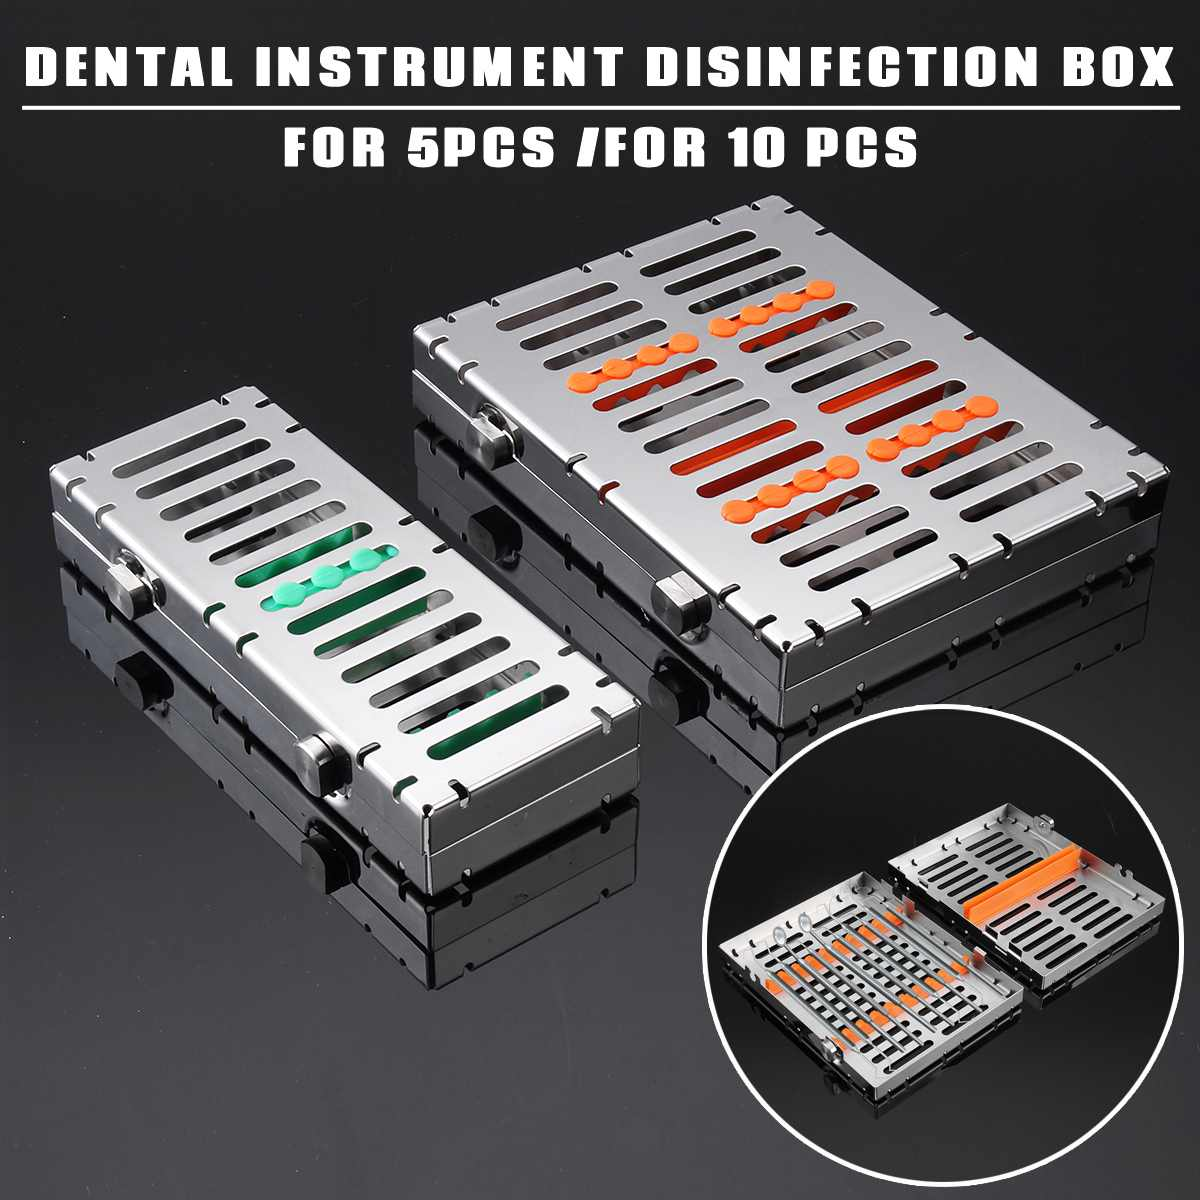 Dental Sterilization Autoclave Cassette Tray Box Rack Linker Disinfection Holder Surgical Instrument Clinic Tool for 5/10PcsDental Sterilization Autoclave Cassette Tray Box Rack Linker Disinfection Holder Surgical Instrument Clinic Tool for 5/10Pcs